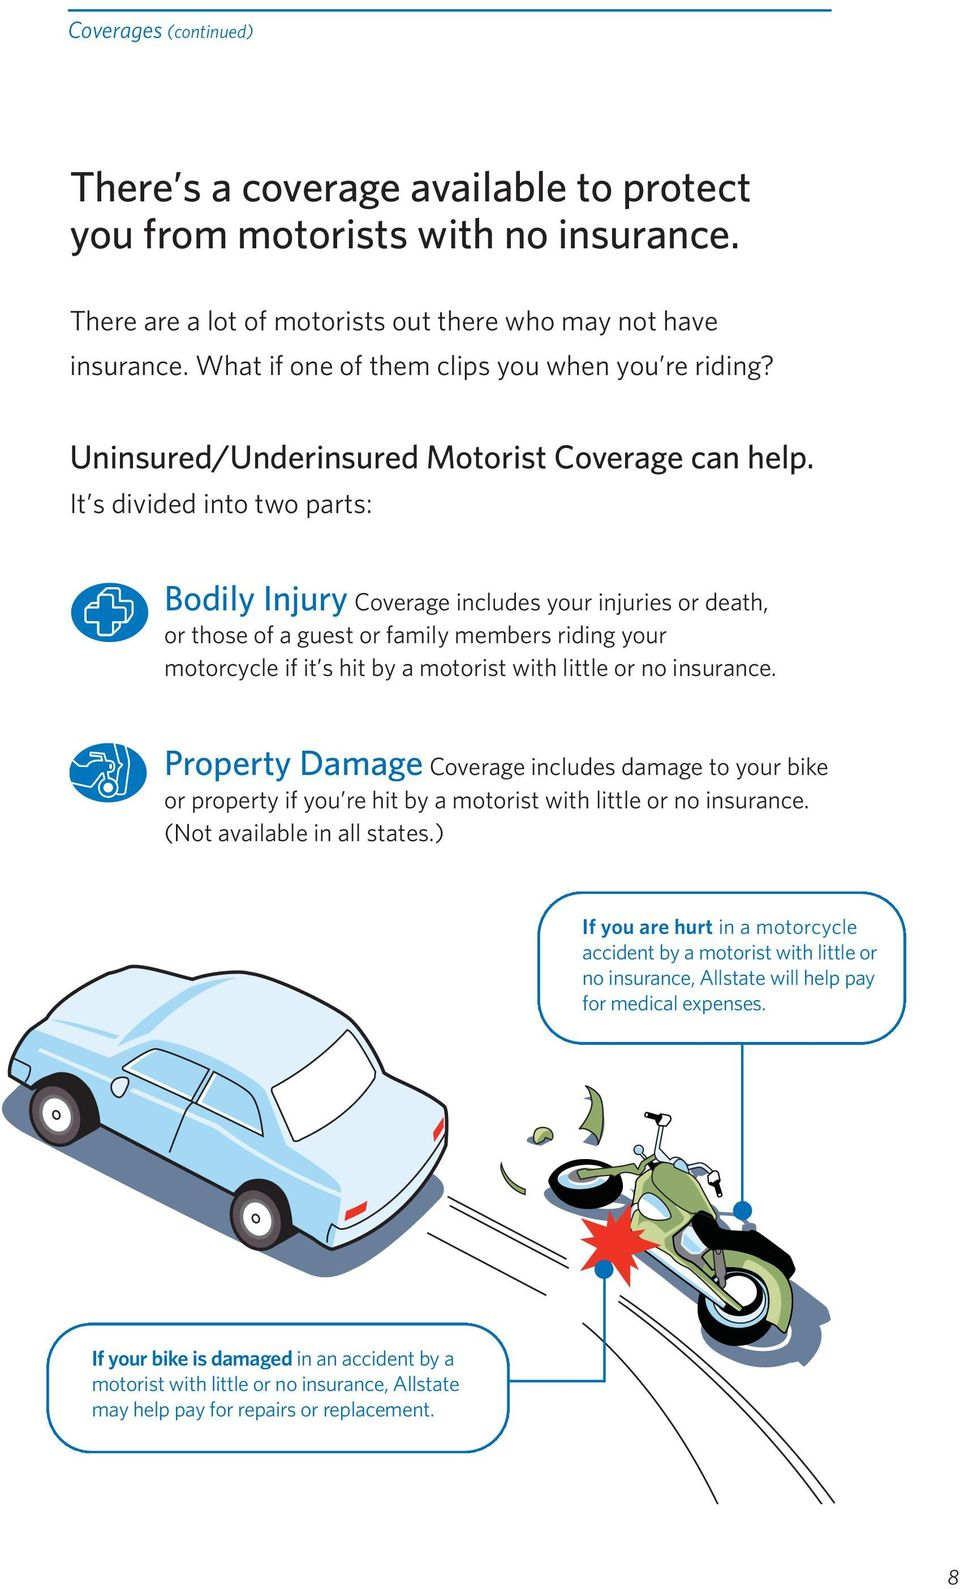 It s divided into two parts: Bodily Injury Coverage includes your injuries or death, or those of a guest or family members riding your motorcycle if it s hit by a motorist with little or no insurance.